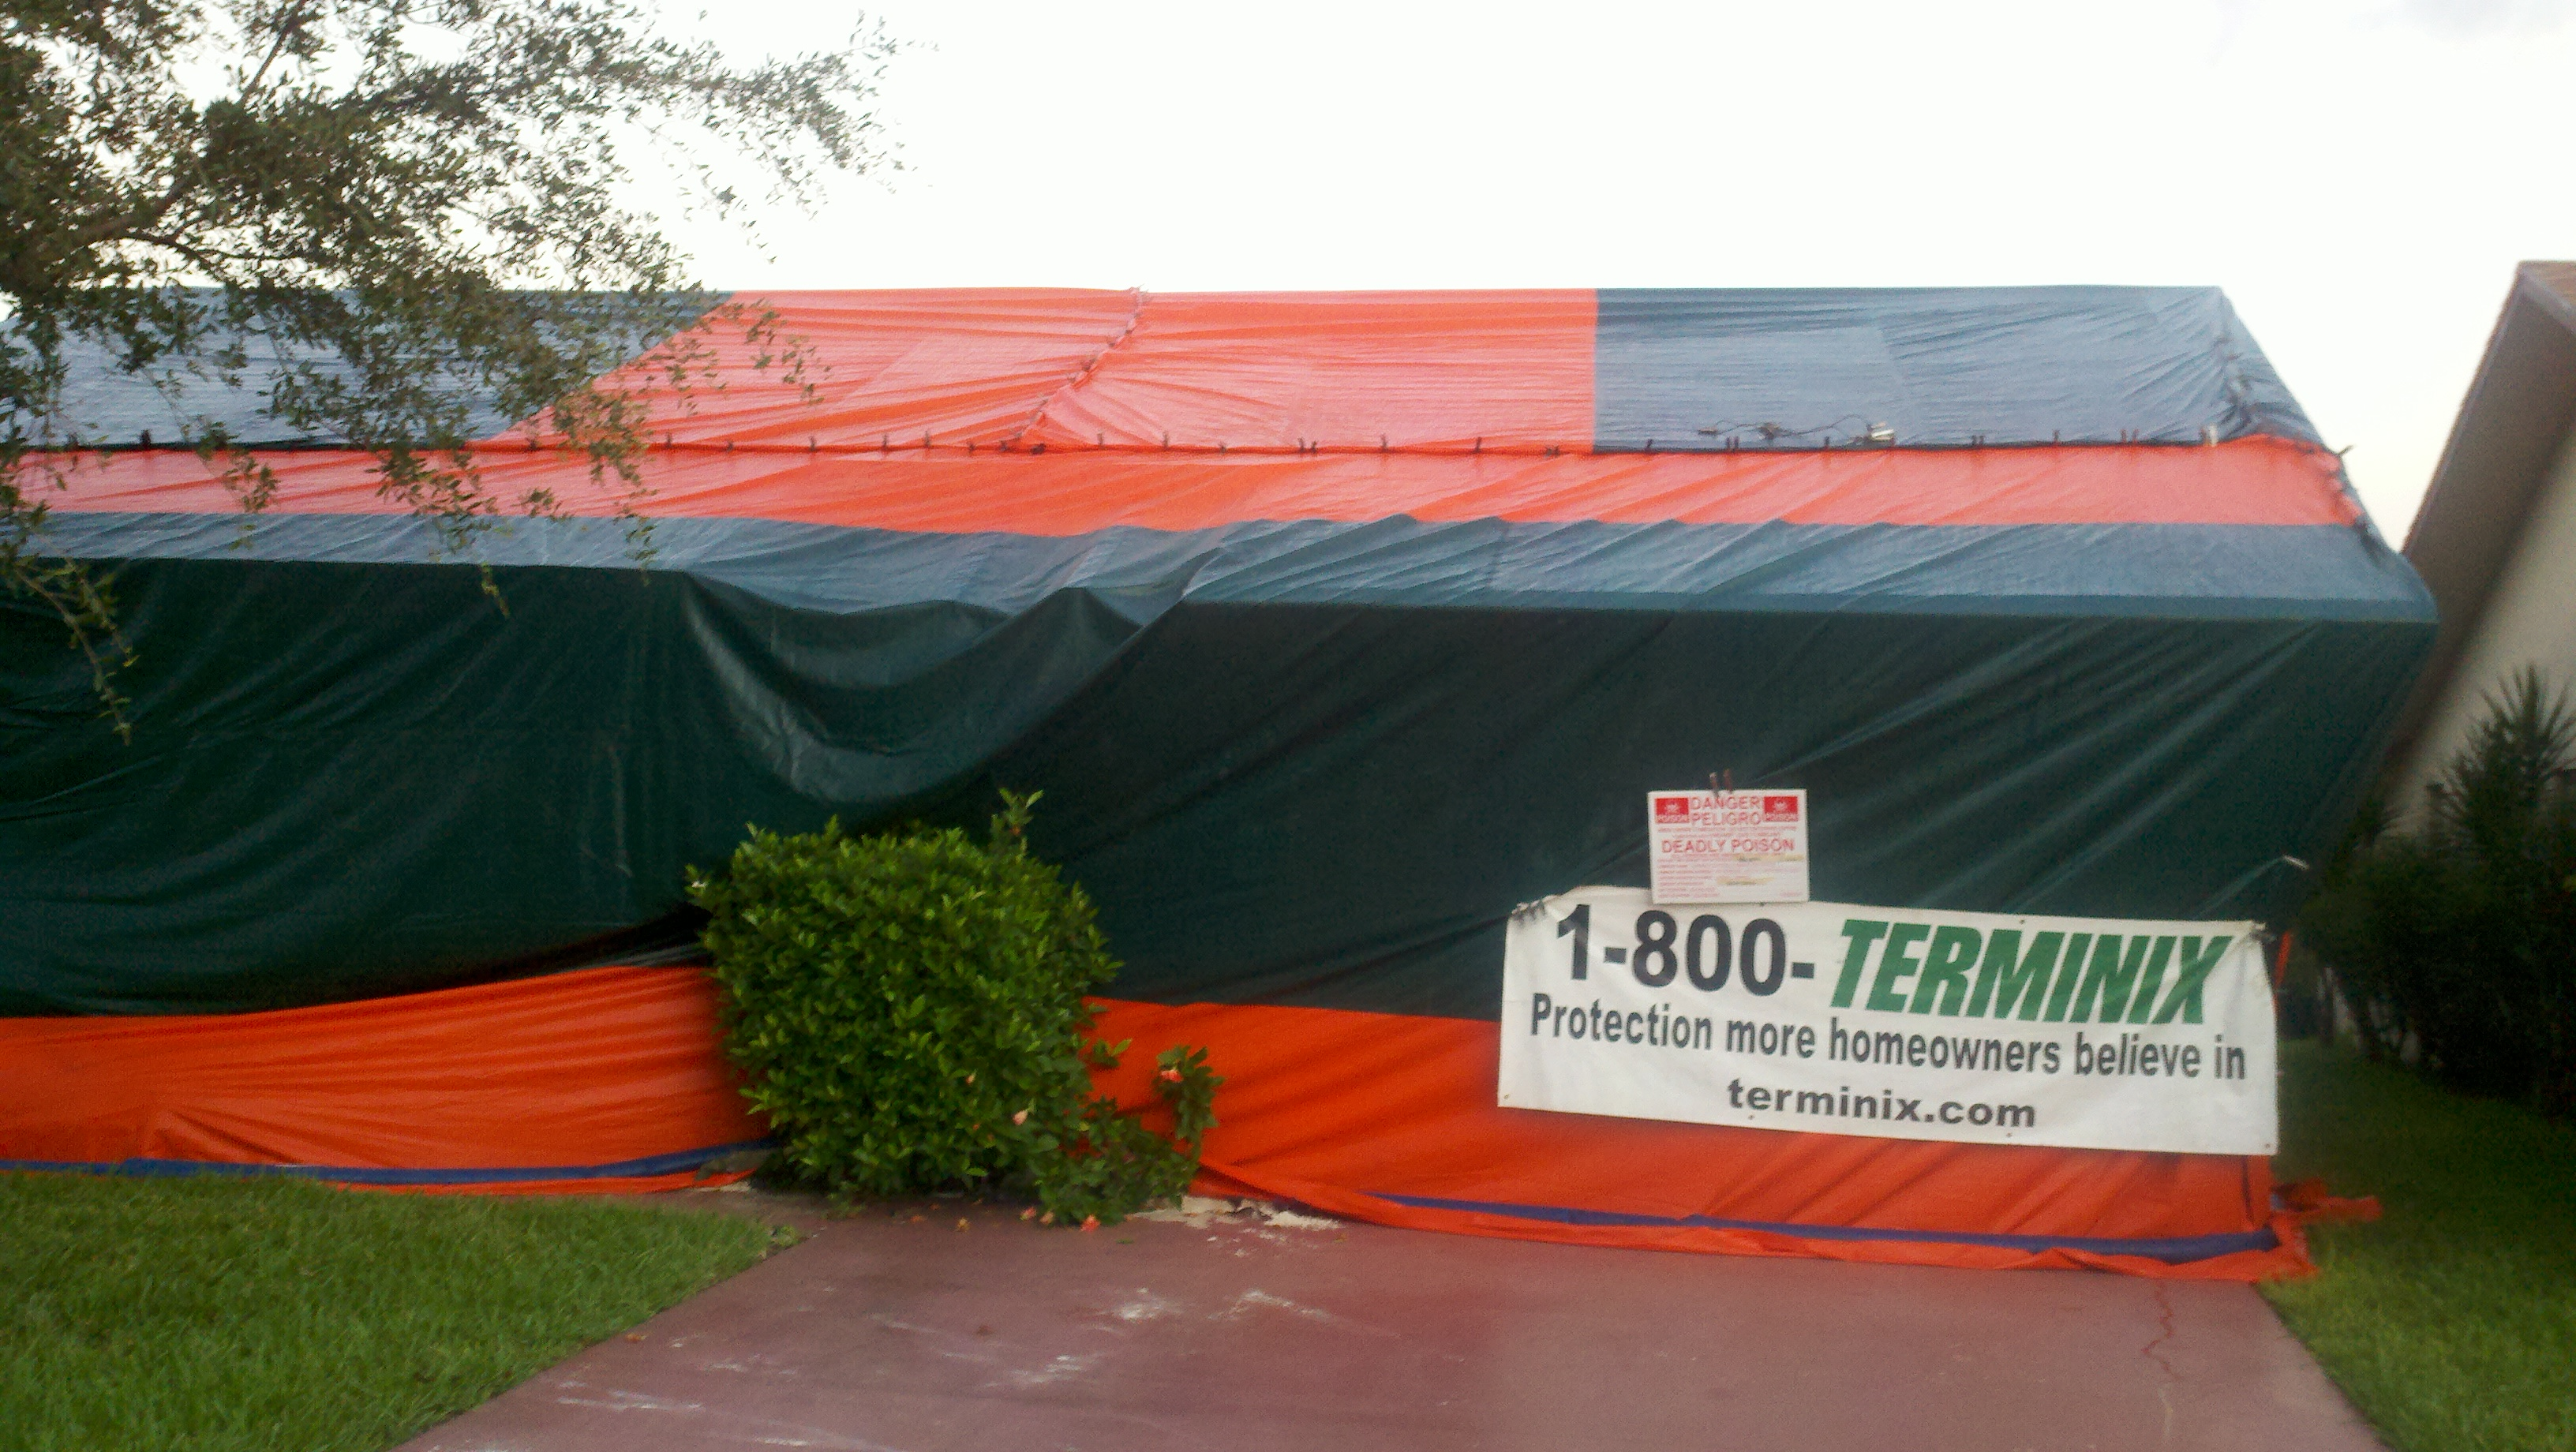 Vikane & Allergy u2013 Is Vikane Termite Fumigation For You? | Mold Inspections